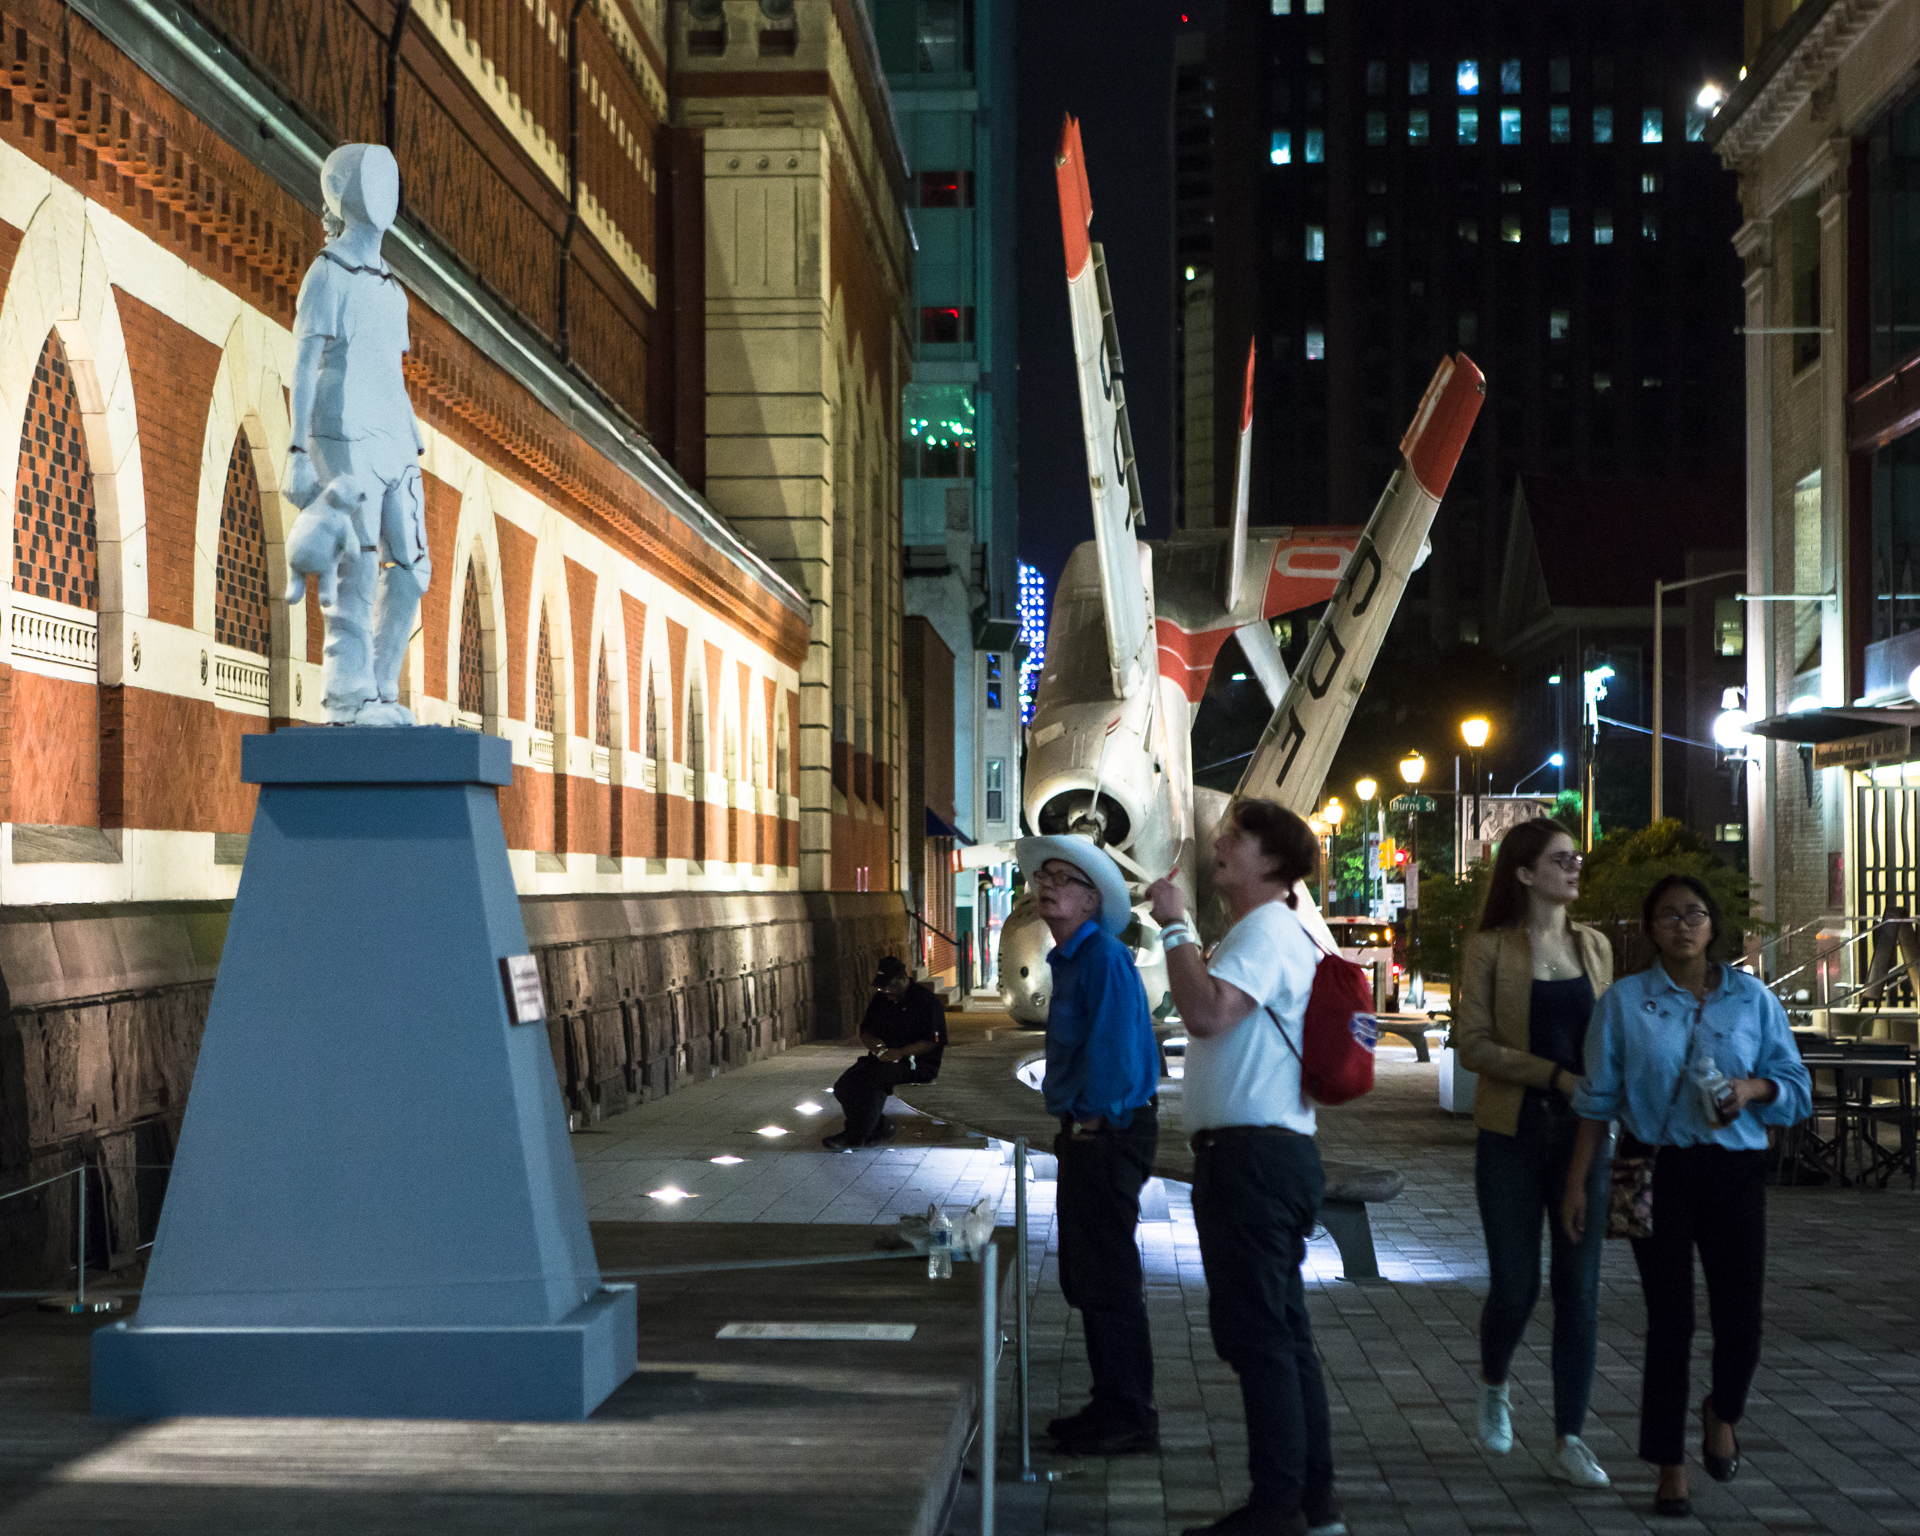 Monument to New Immigrants  Tania Bruguera Born in 1968 • Cuban • Based in Havana/New York City/Cambridge, MA Clay and Framing Materials Special Project – PAFA   Photo: Steve Weinik/Mural Arts Philadelphia